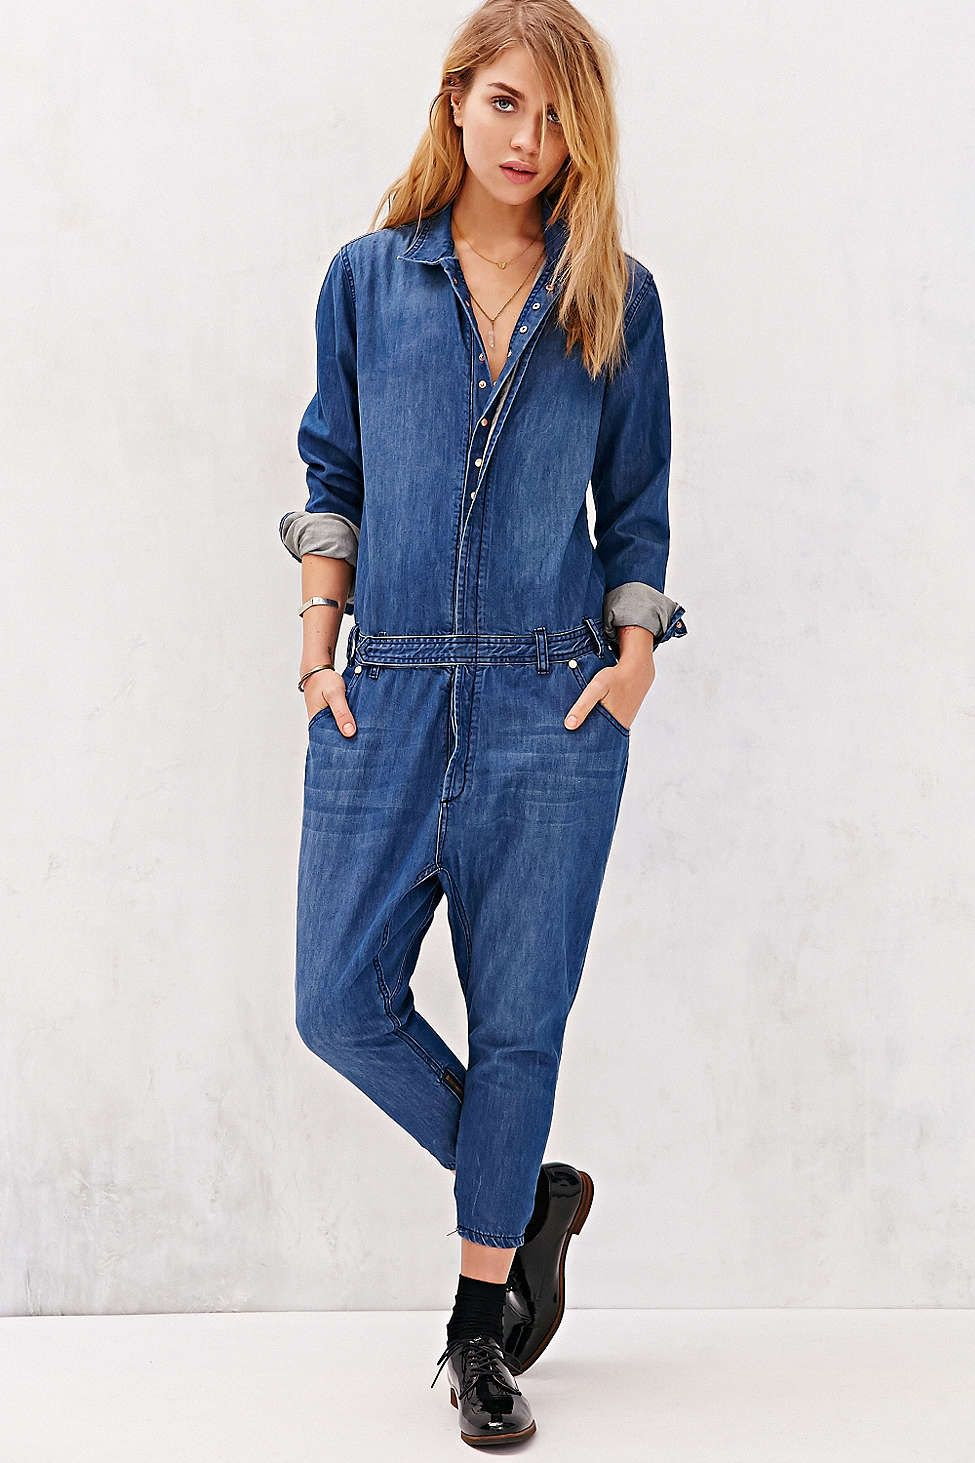 edb0bde56f0b One Teaspoon Utility Jumpsuit - Urban Outfitters